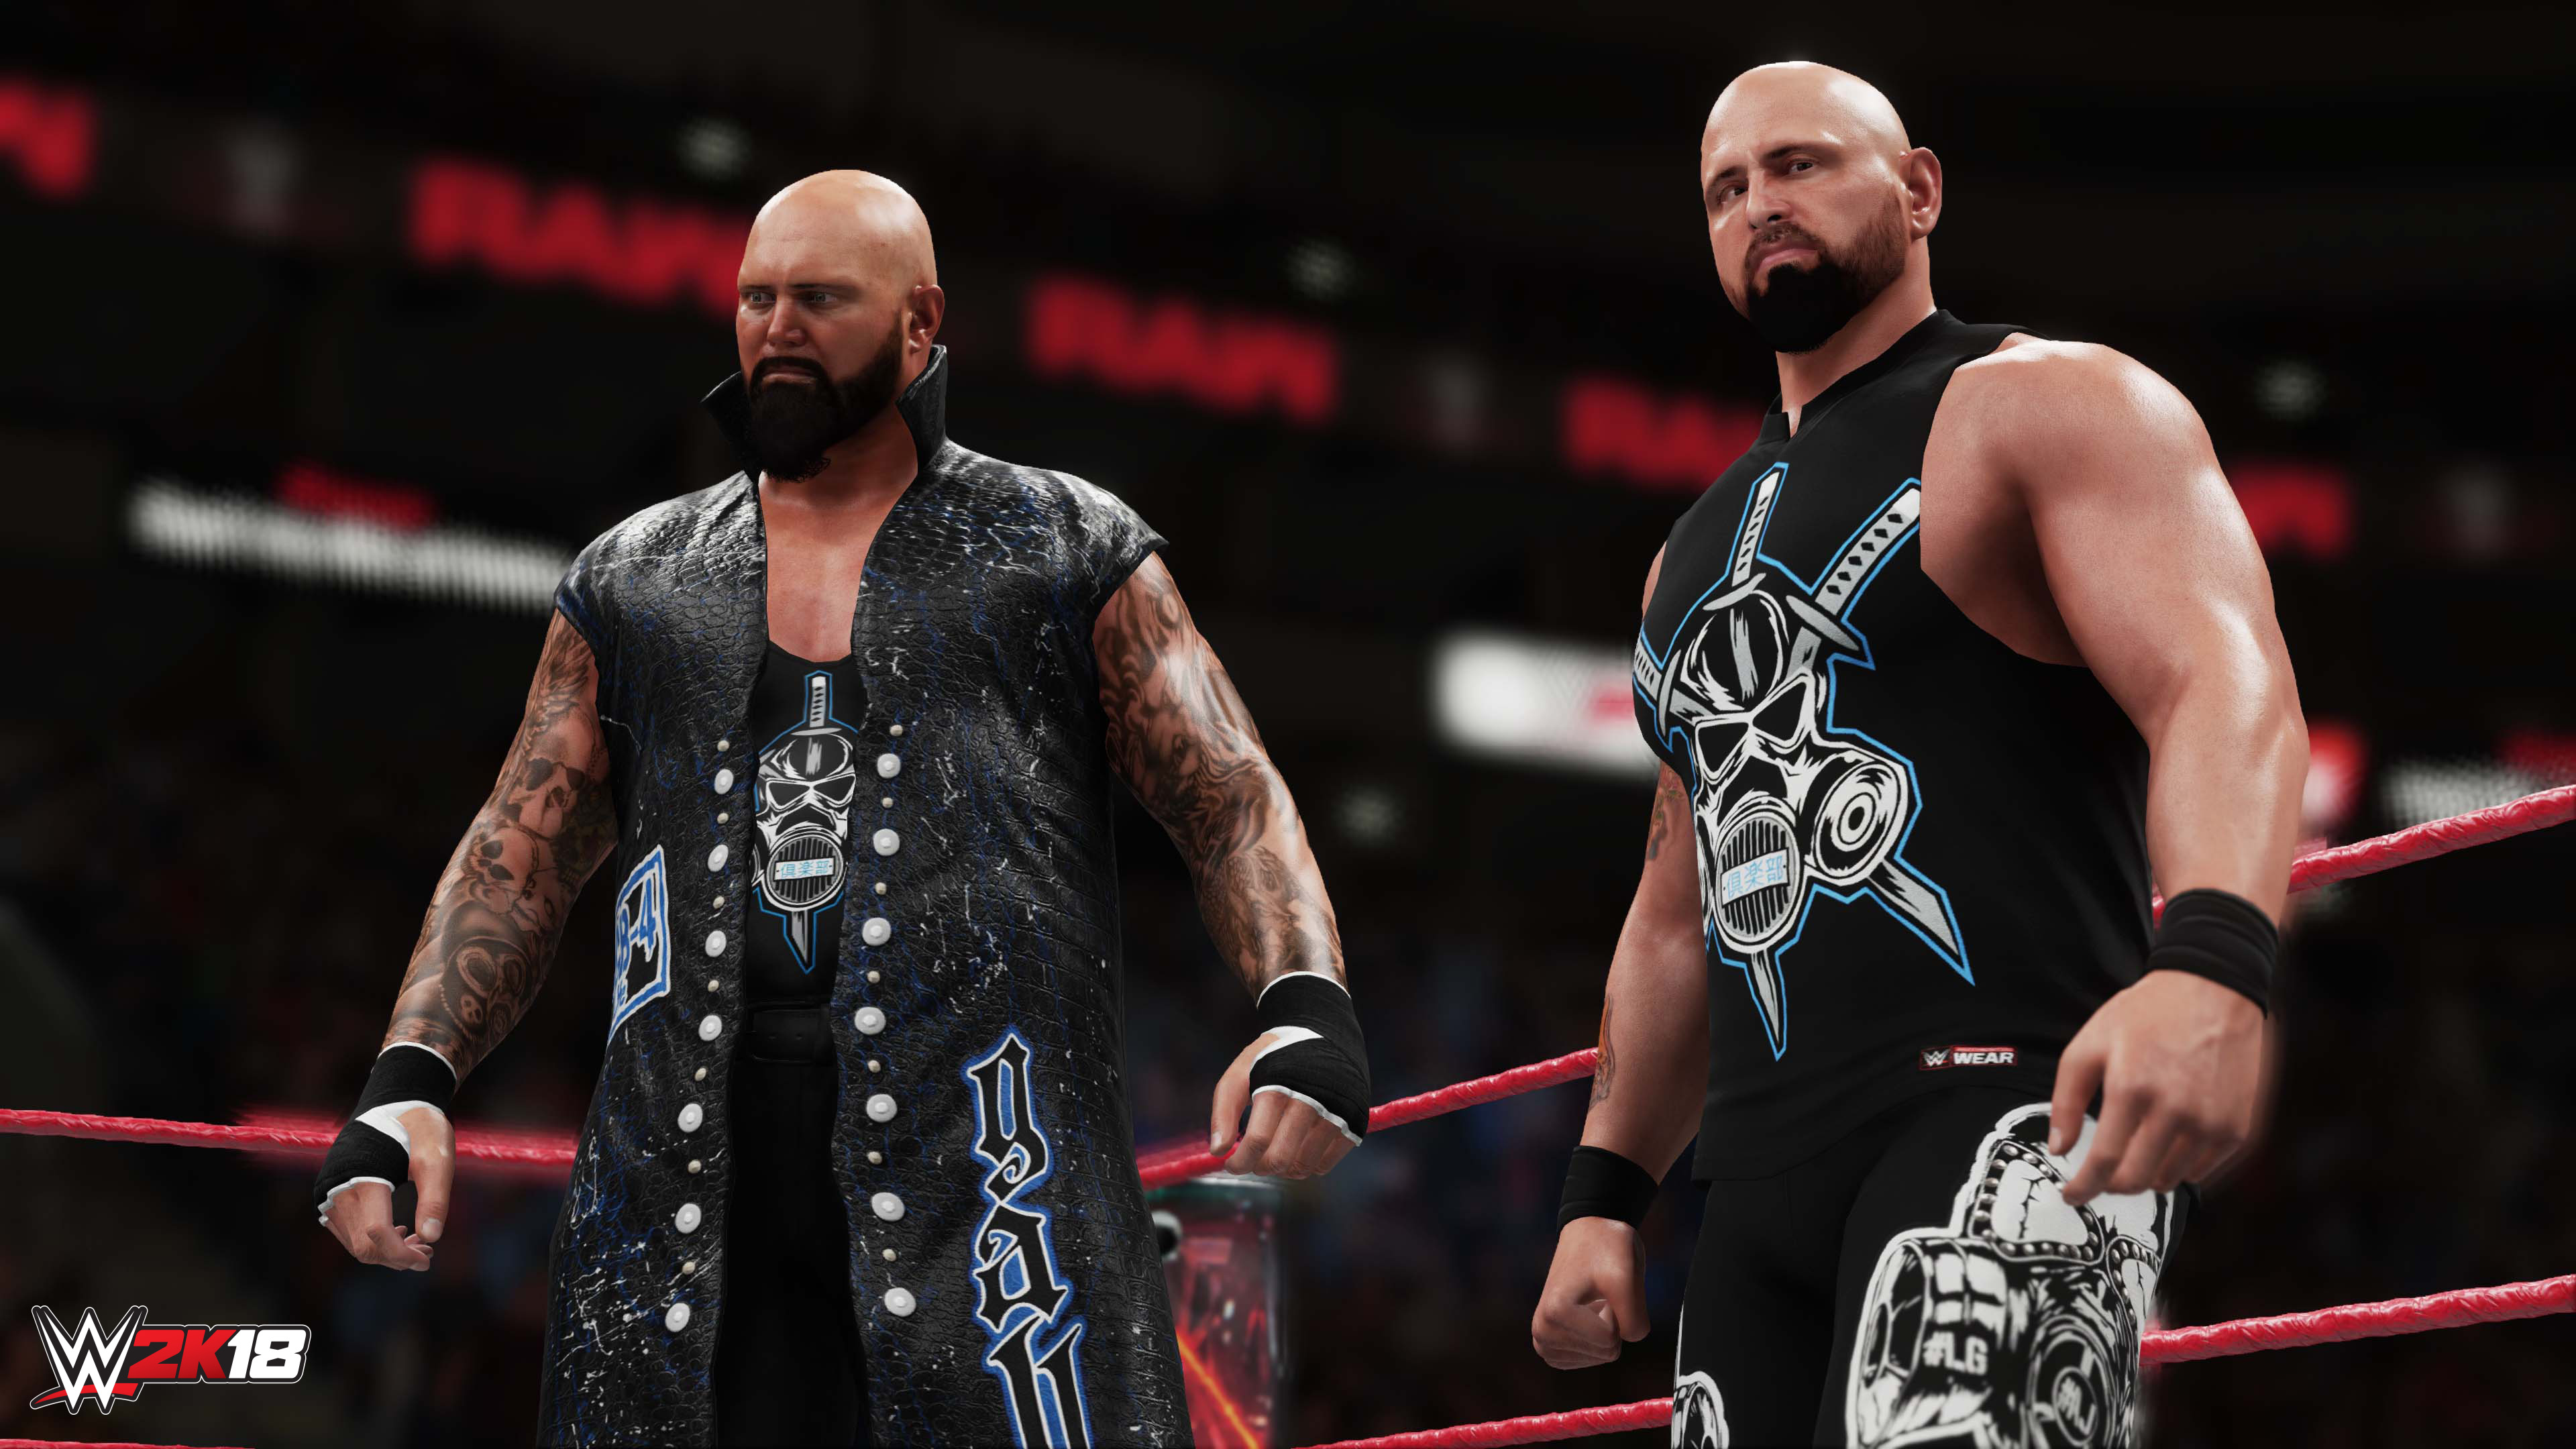 WWE 2K18 Fighting Styles - MyPLAYER and MyCareer - Full